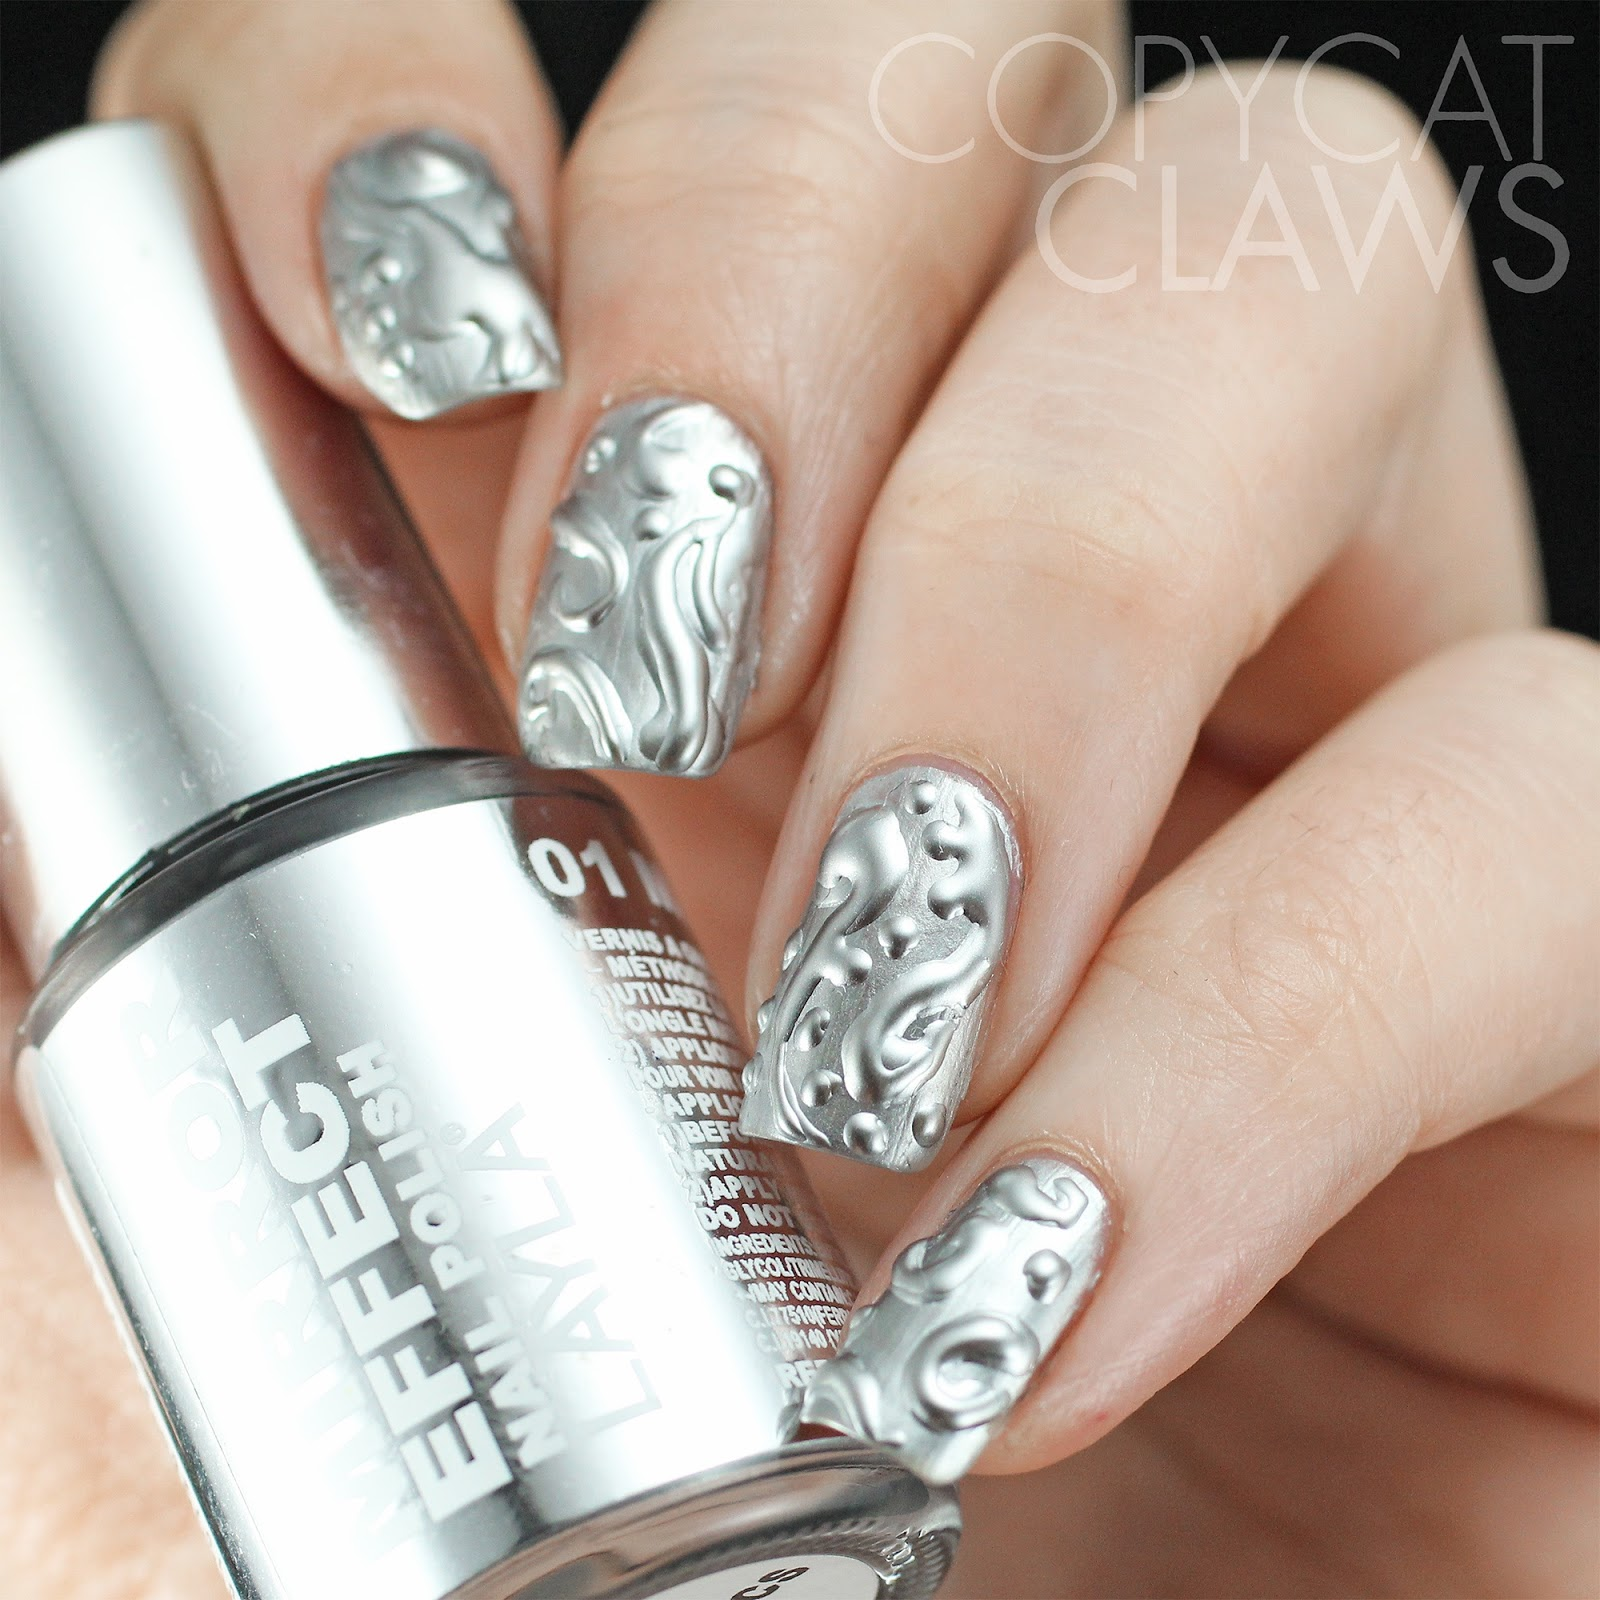 Copycat Claws: The Digit